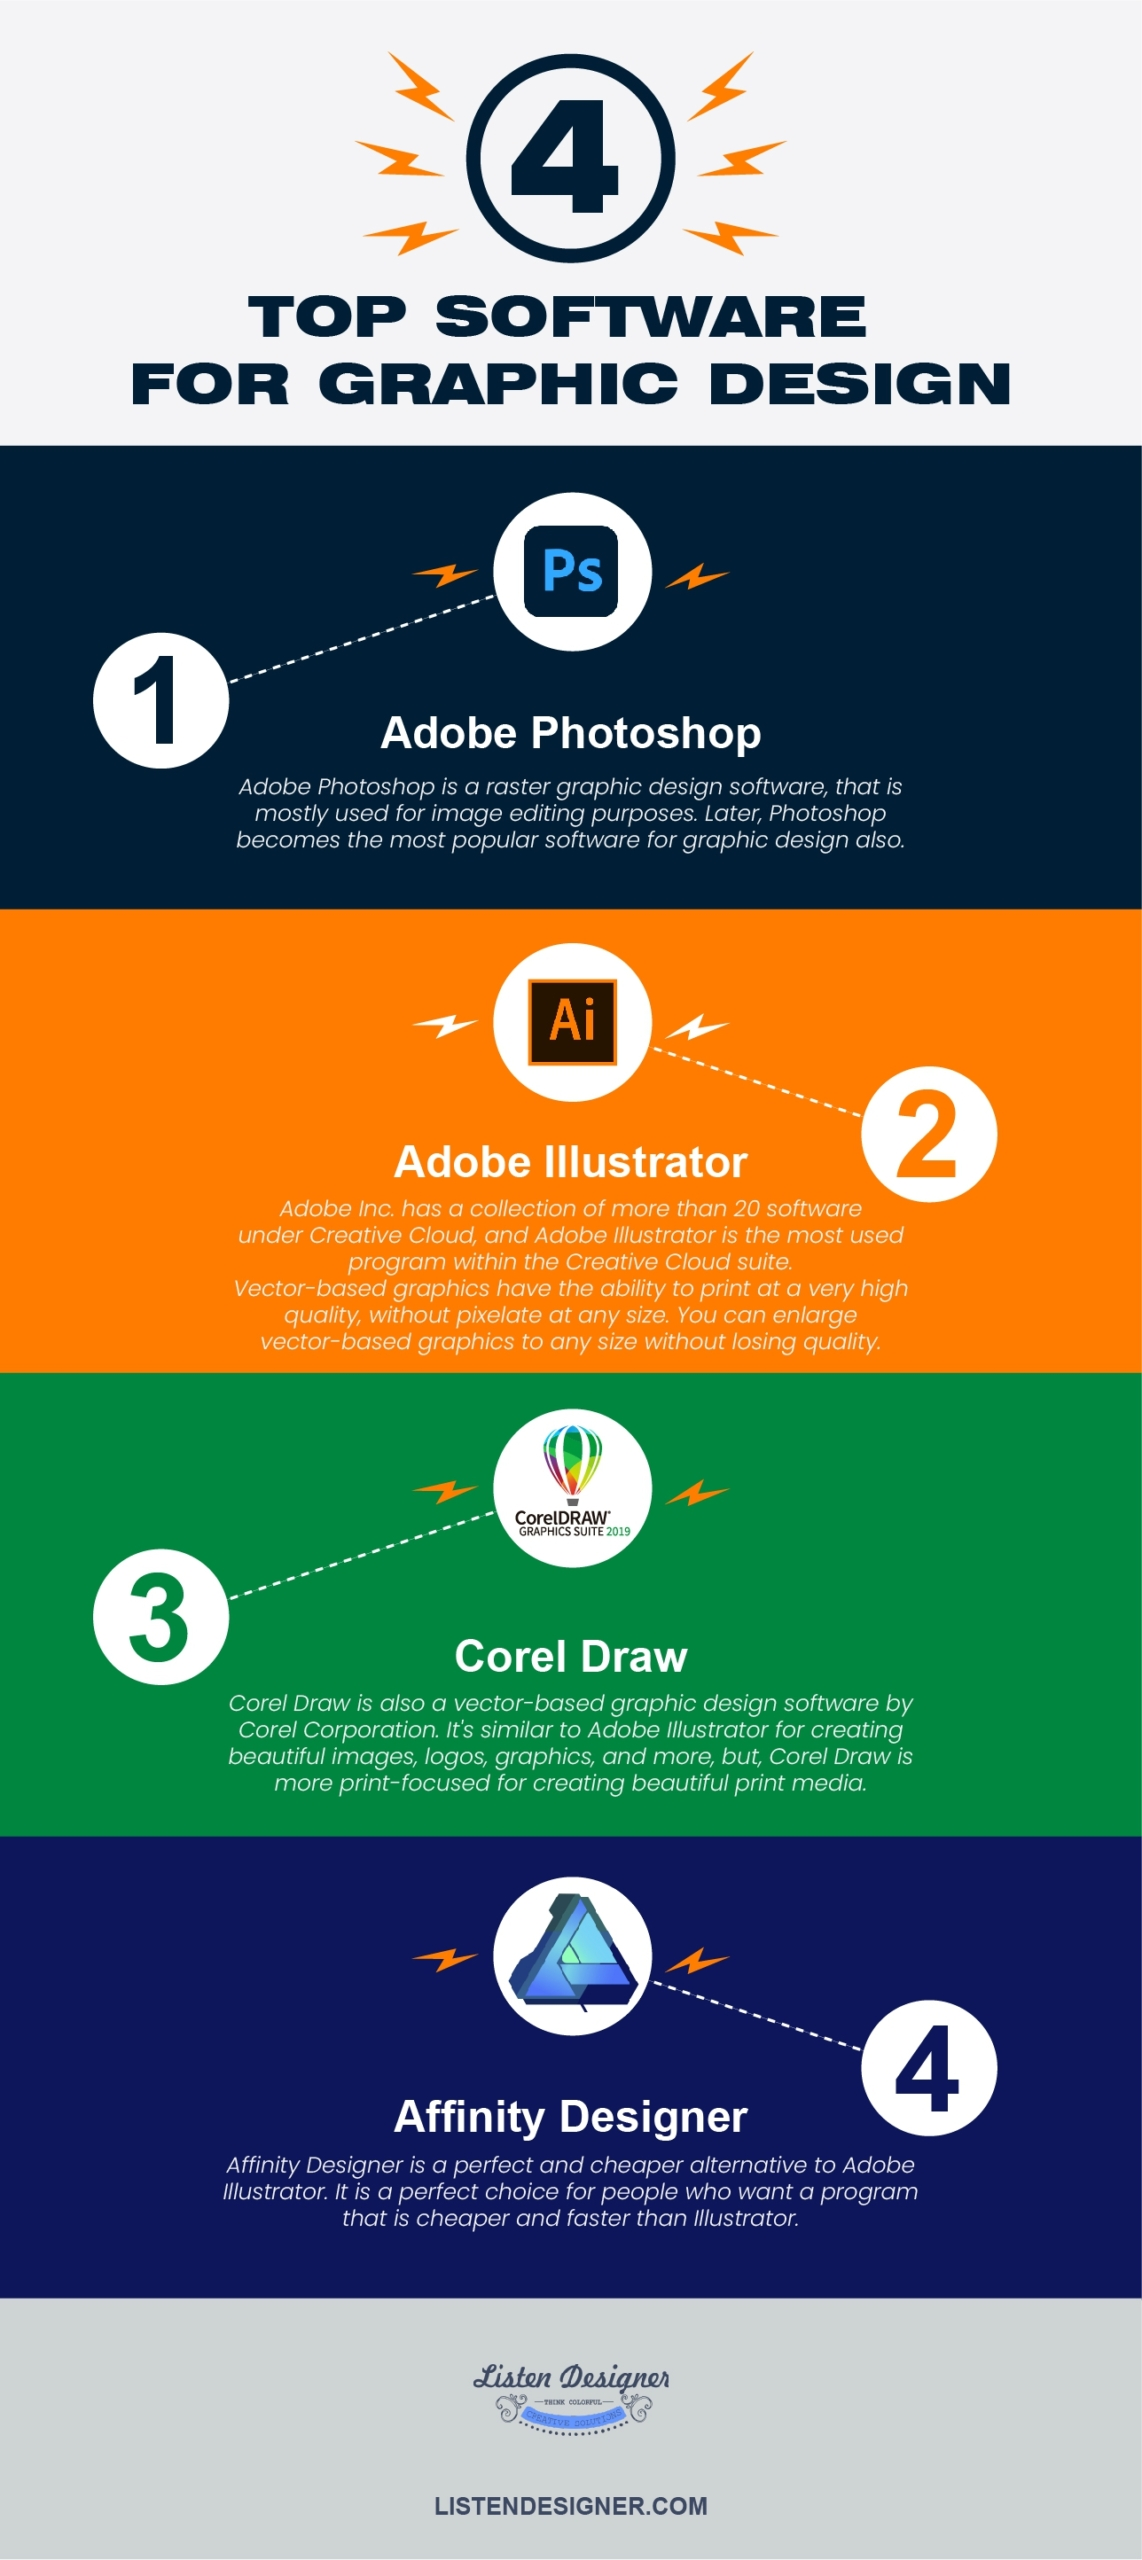 Top software for graphic design infographic